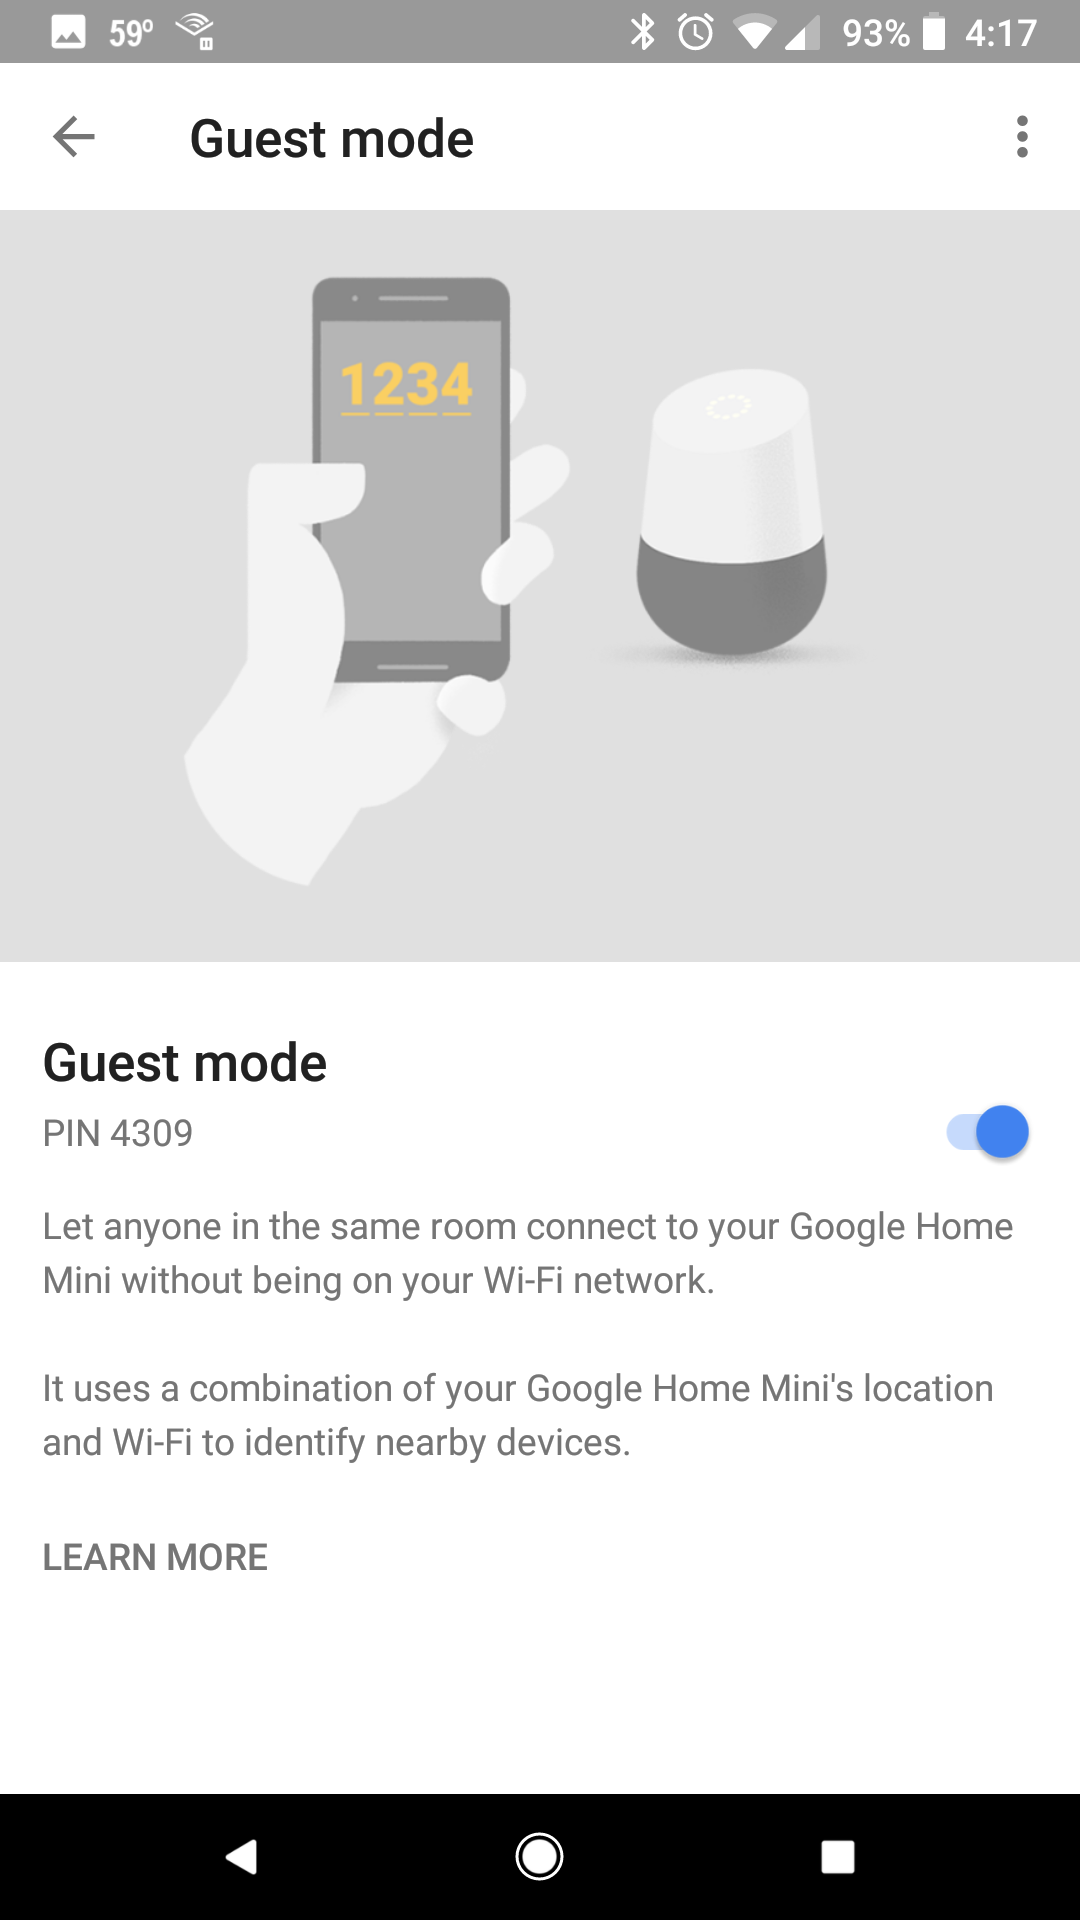 Tips and tricks every Google Home user should know